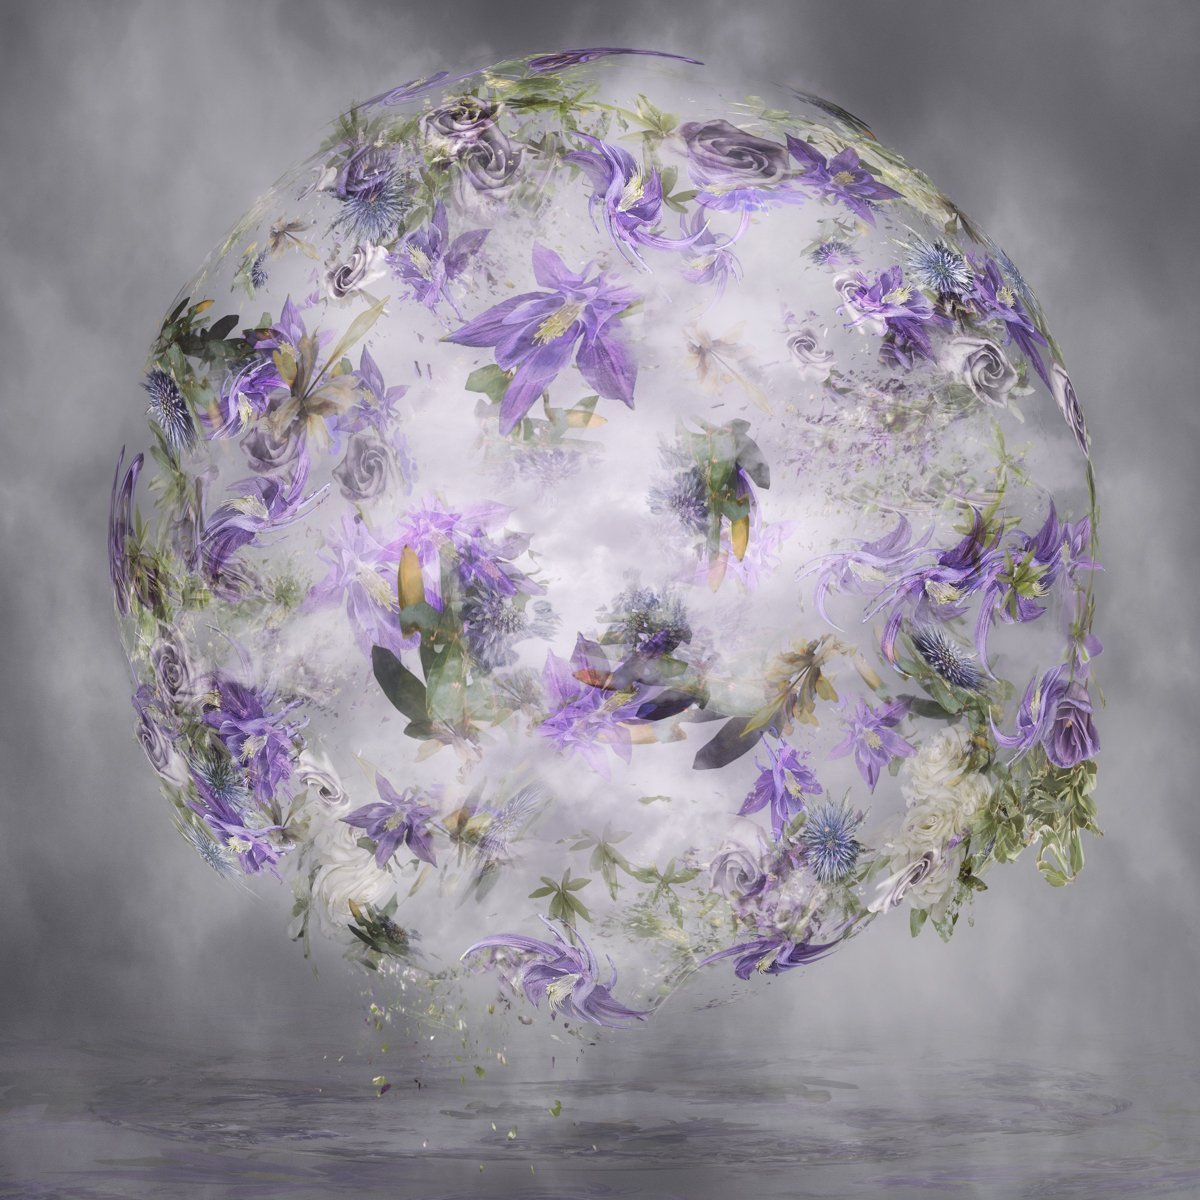 photo art including columbine, roses and clouds in a floral sphere